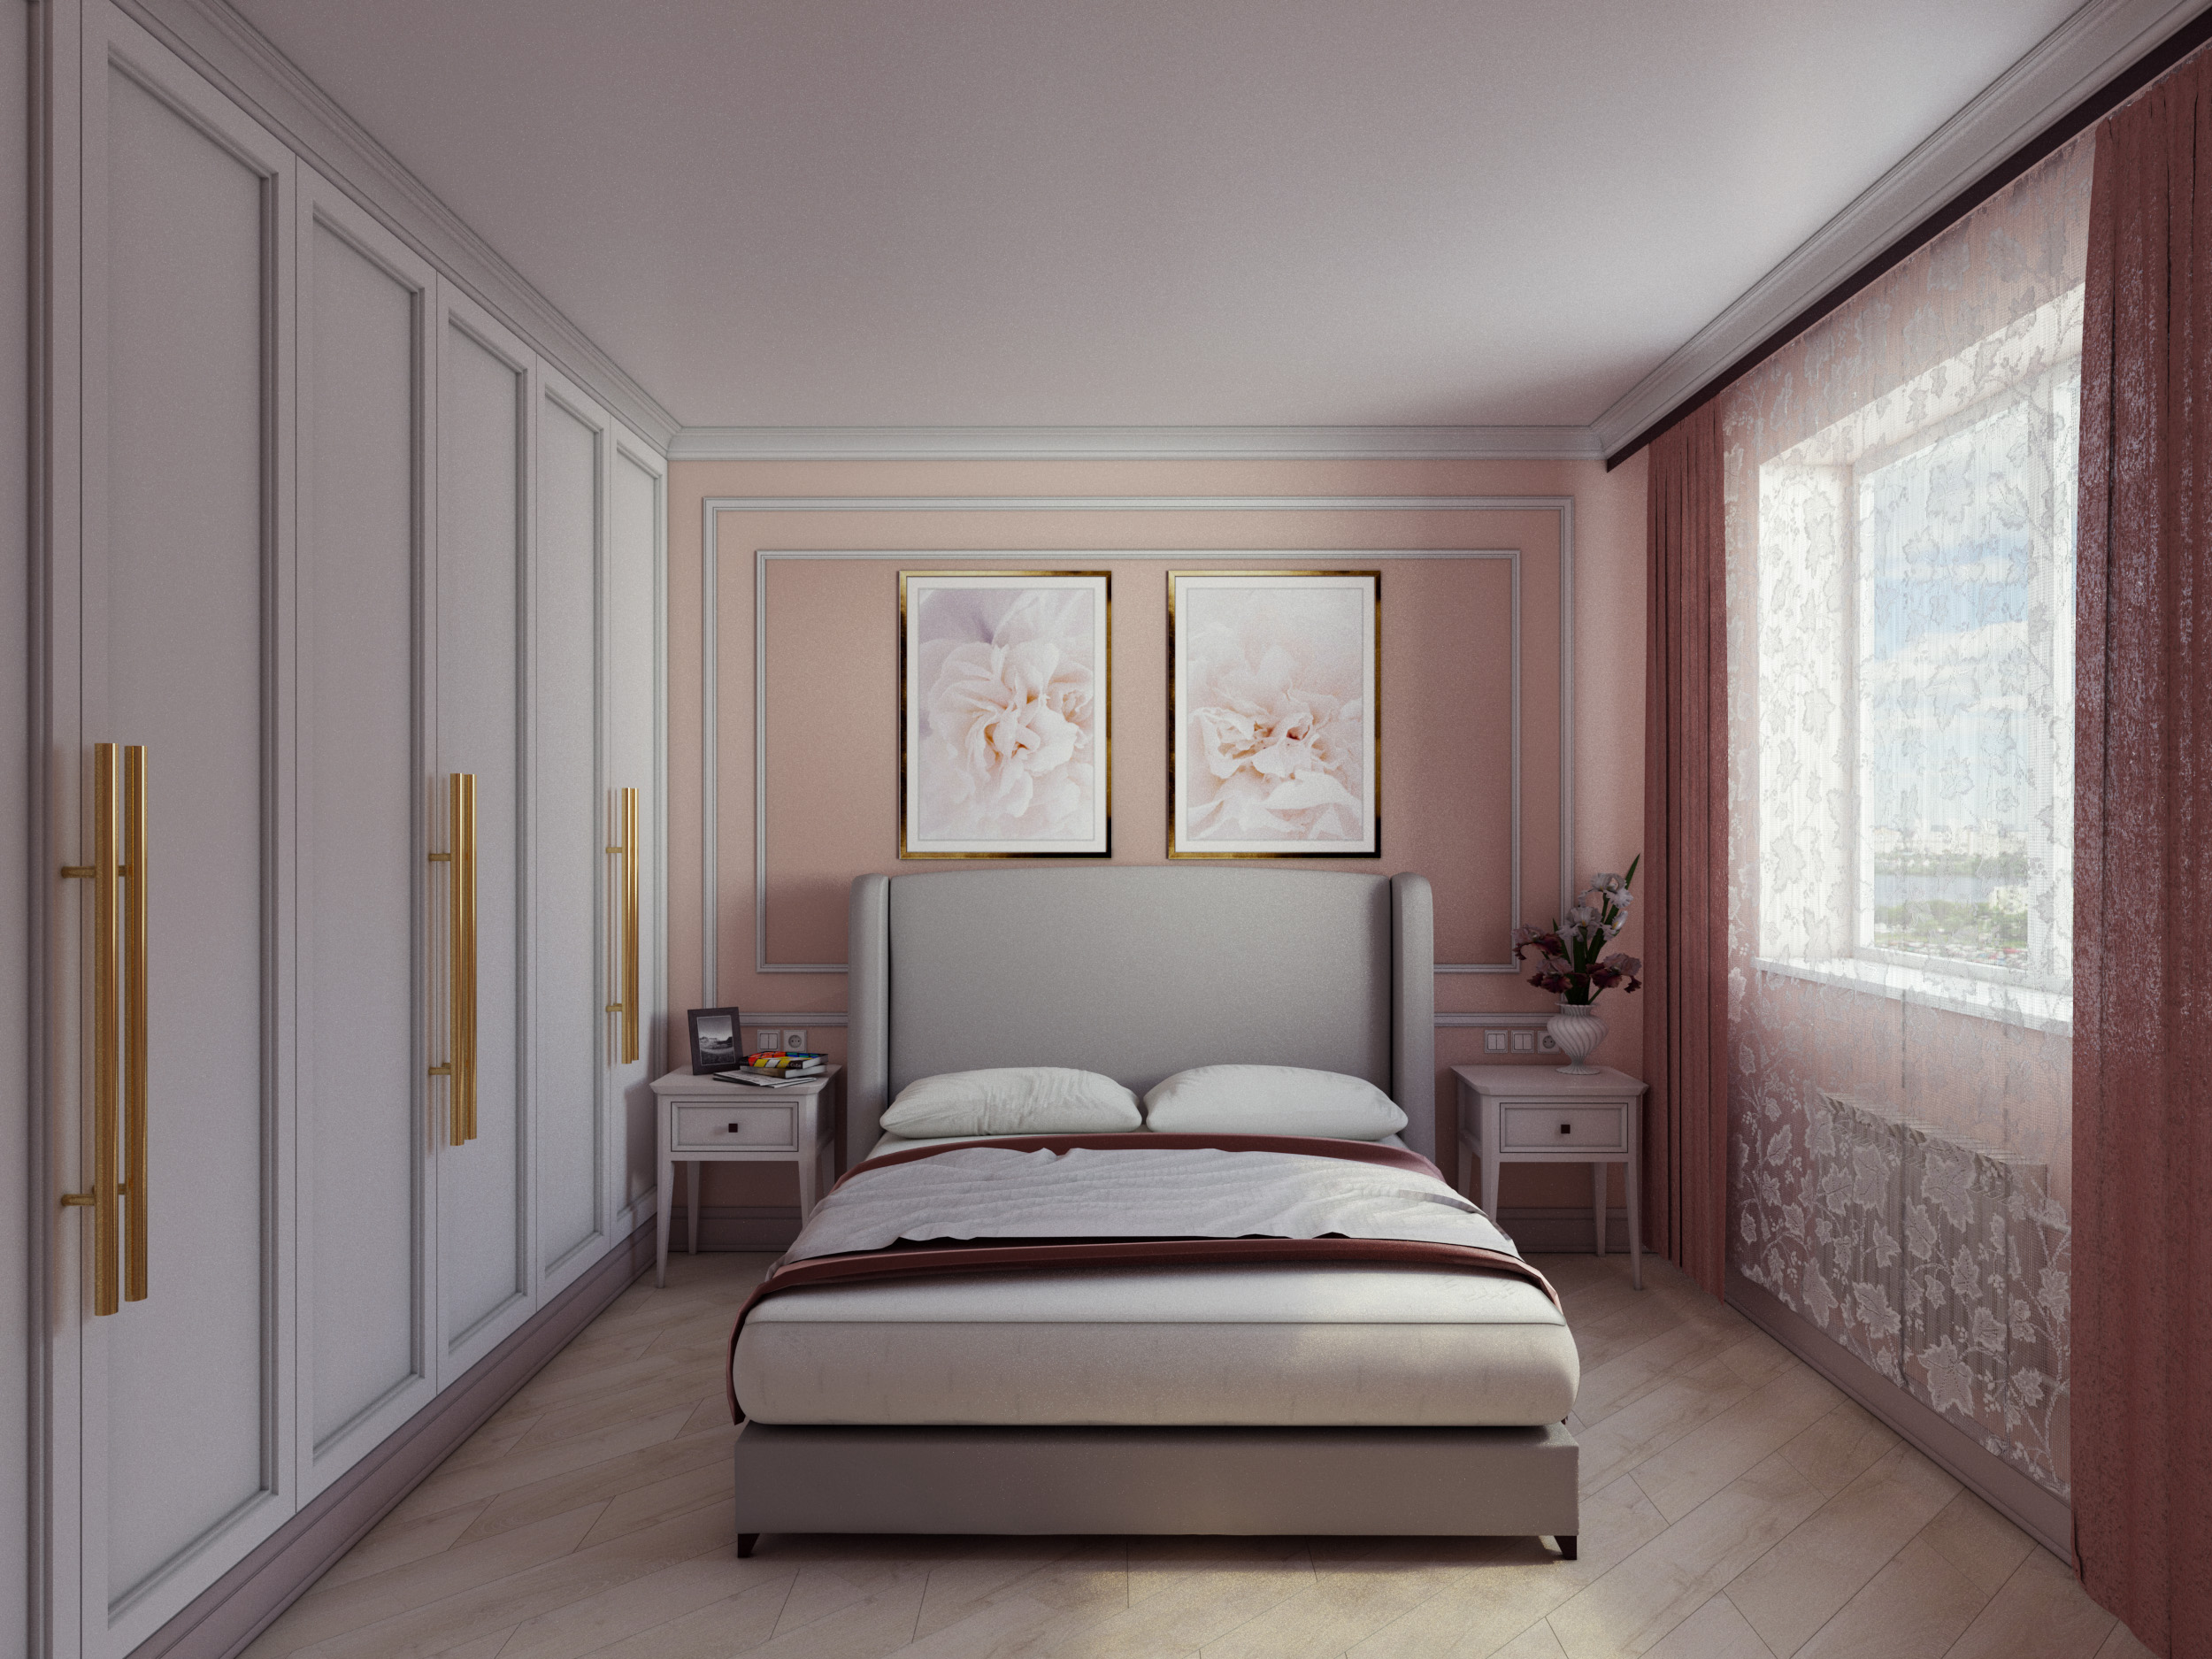 ROOM INTERIOR 002 in 3d max corona render image